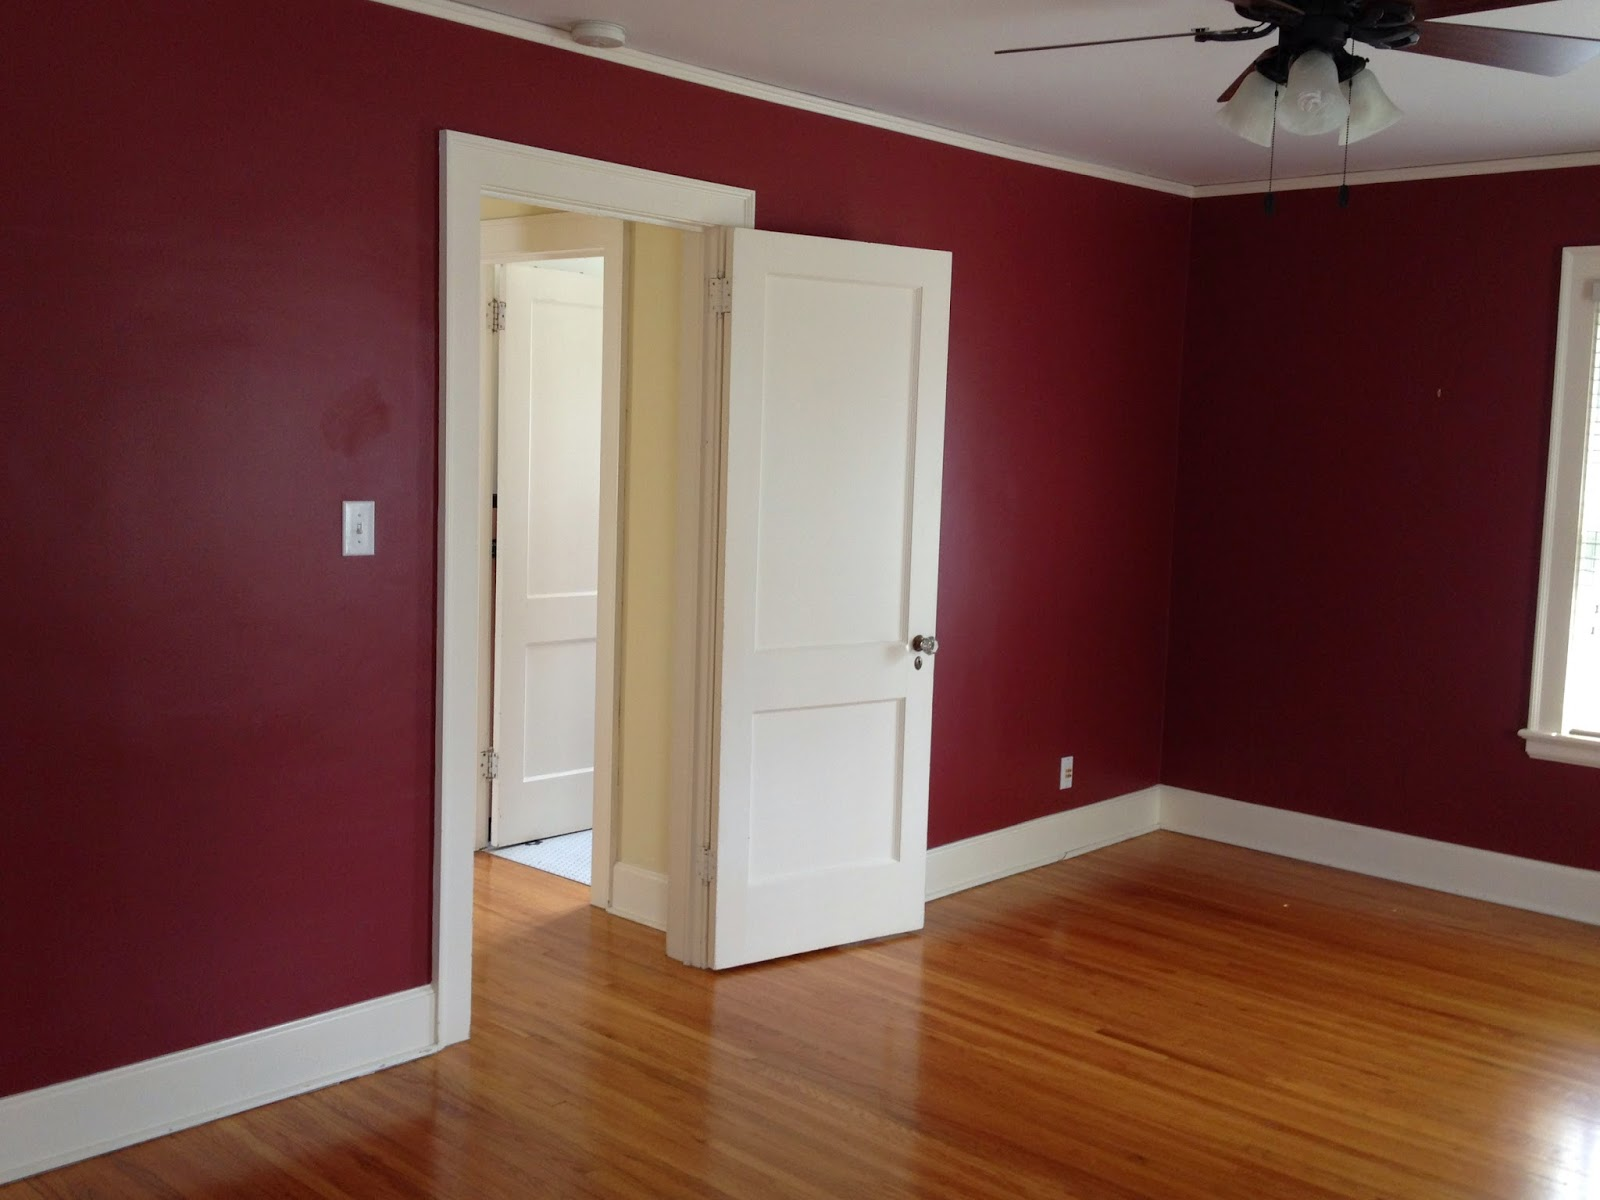 Notice The Radiator That Is Also Painted Maroon And The Kilz Primer With Maroon Bedroom